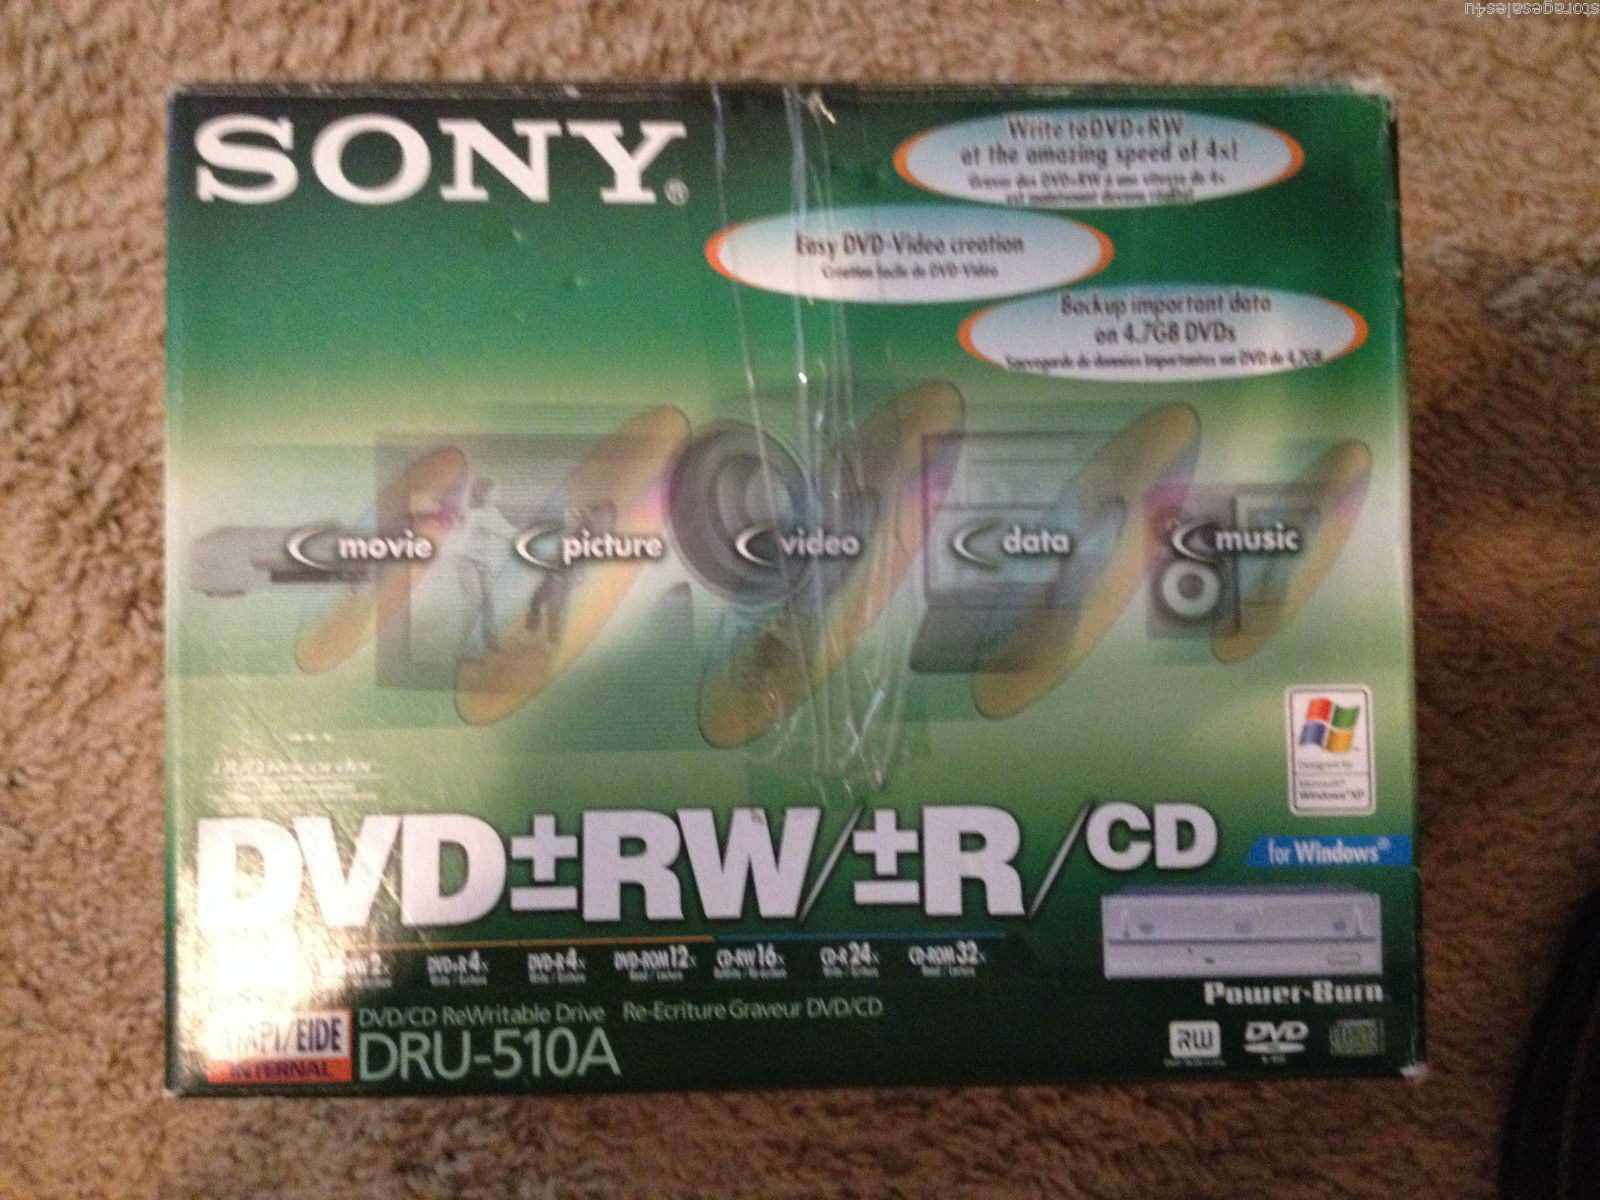 Amazon. Com: sony dru-510a dvd/cd rewritable drive: computers.